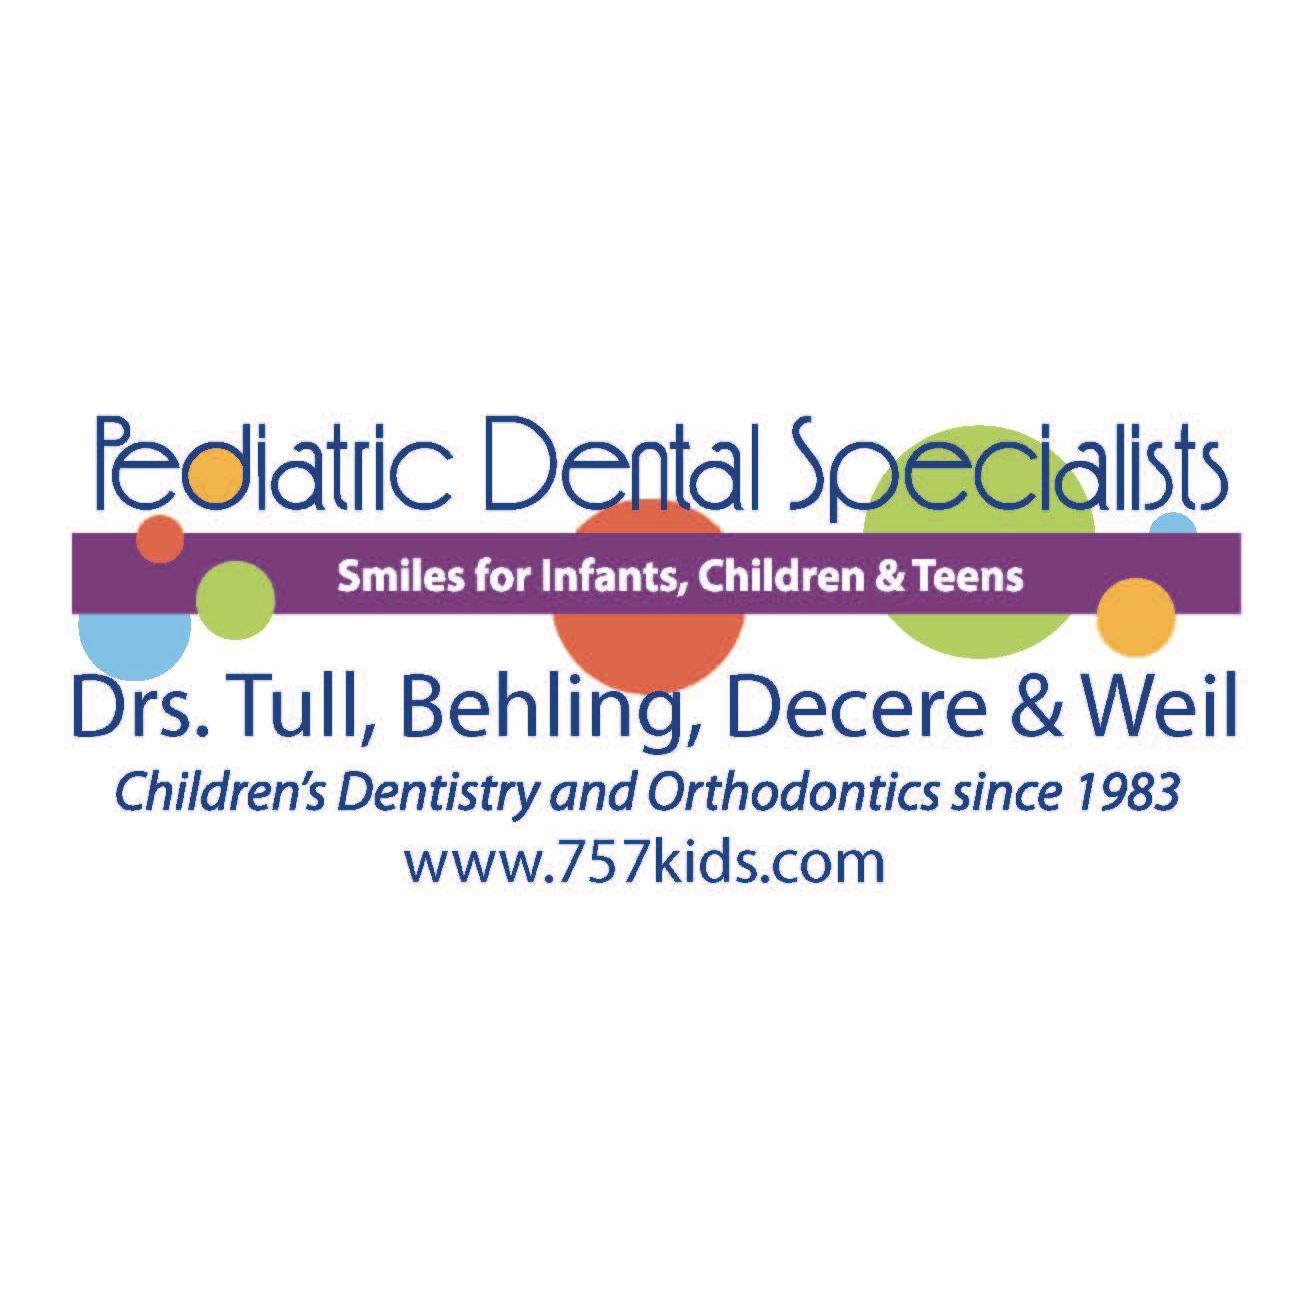 Pediatric Dental Specialists Drs. Tull, Behling, Decere and Weil